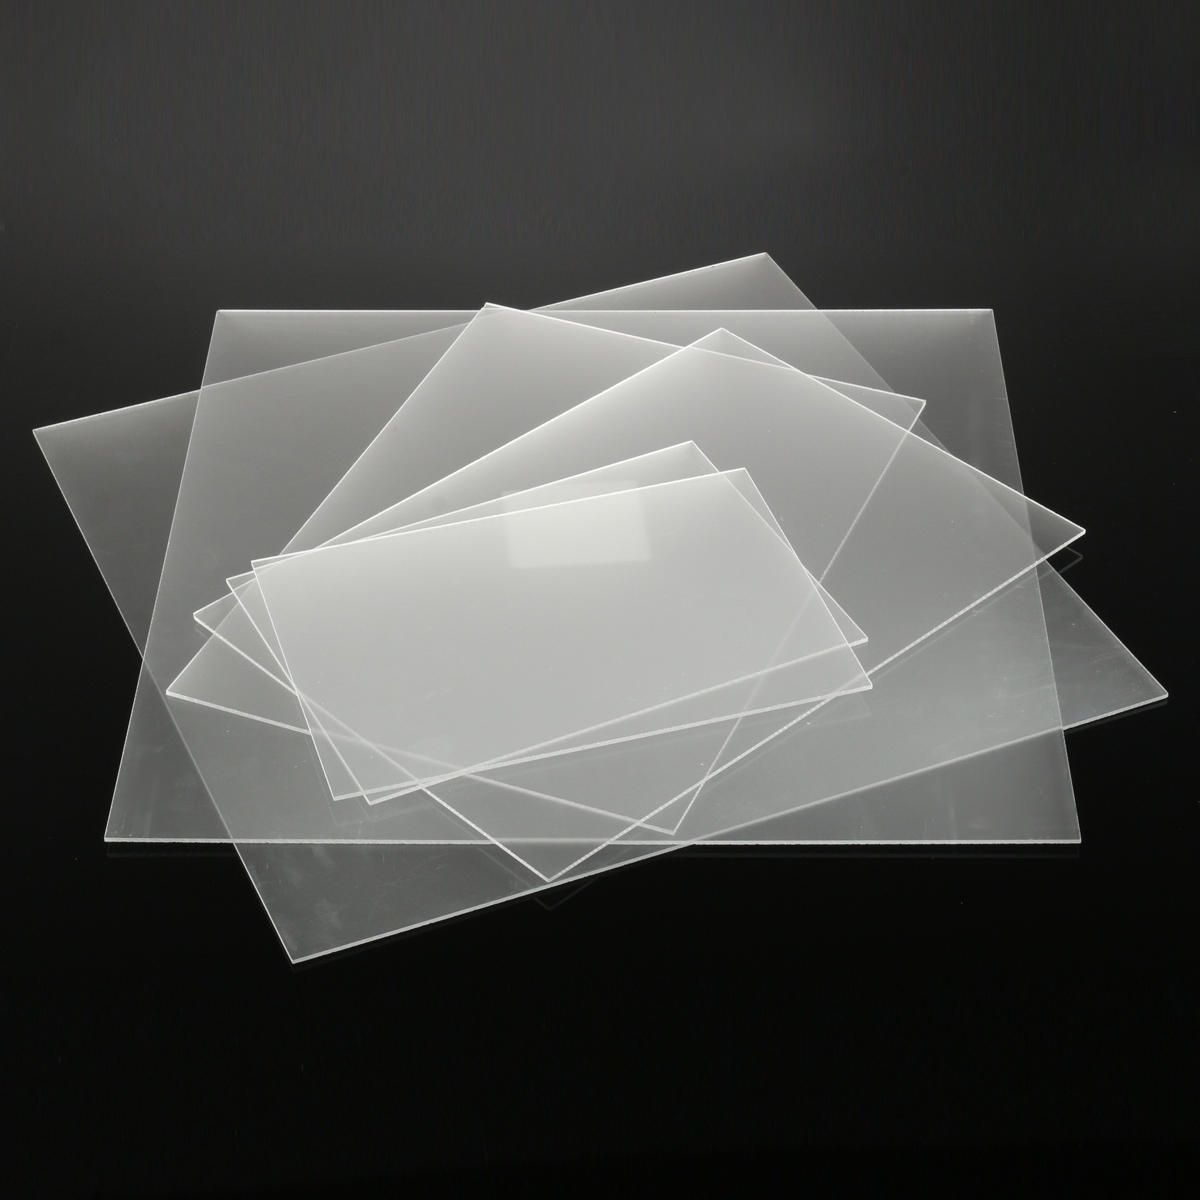 3mm One Sized Frosted Acrylic Sheet Clear Satin Matte Finish Plastic Panel 6 Sizes Frosted Acrylic Sheet Acrylic Sheets Matte Finish